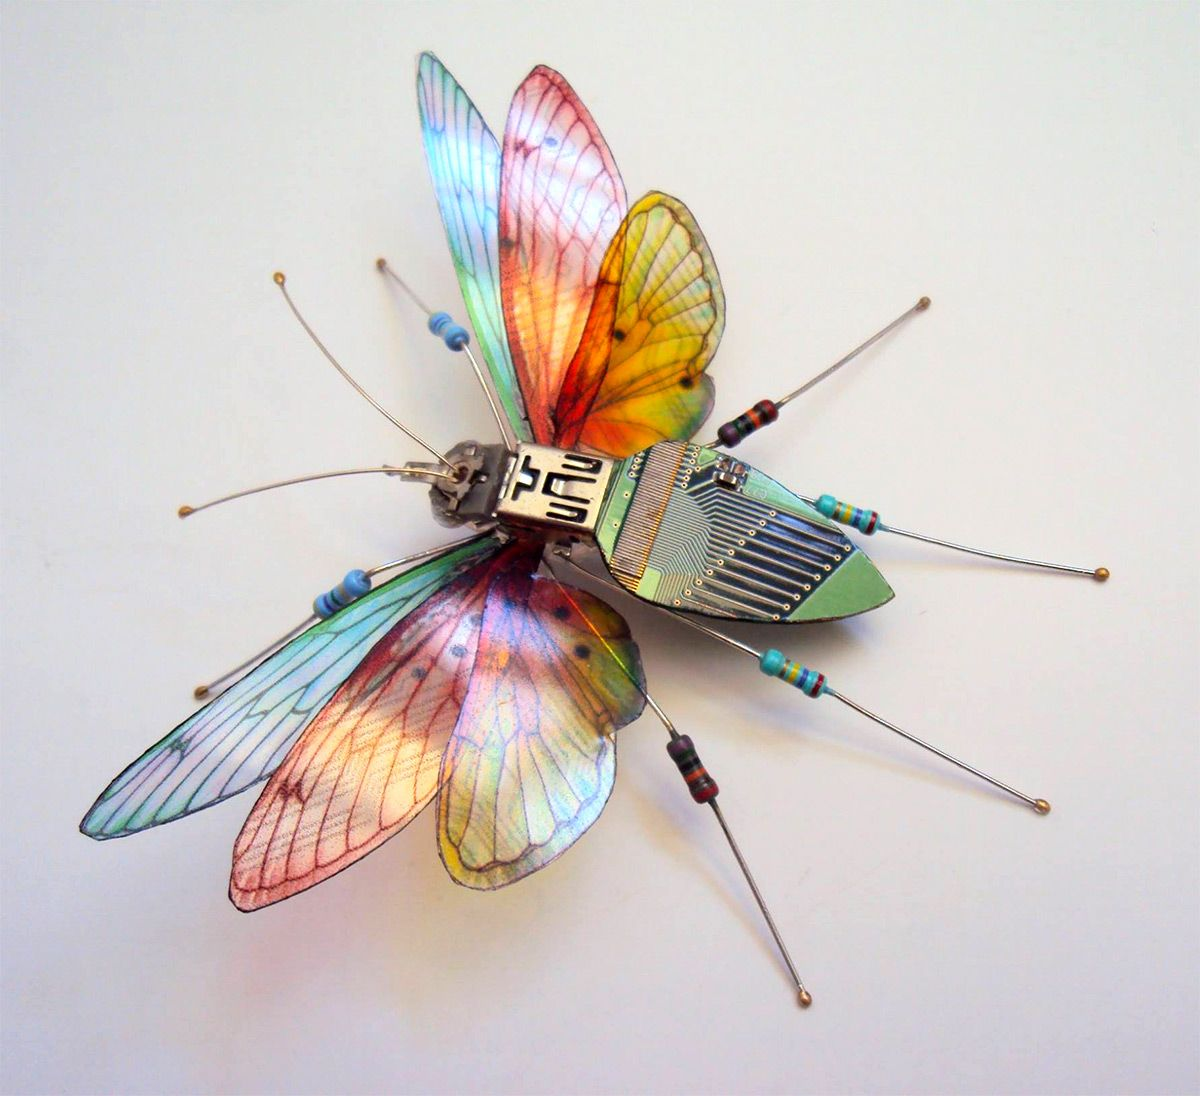 Winged Insects Built From Repurposed Computer Circuit Boards And Old Upcycled Into Jewels Recycled Electronic Waste Video Game Systems One Of The Most Beautiful Creative Reuse Projects Ive Ever Seen